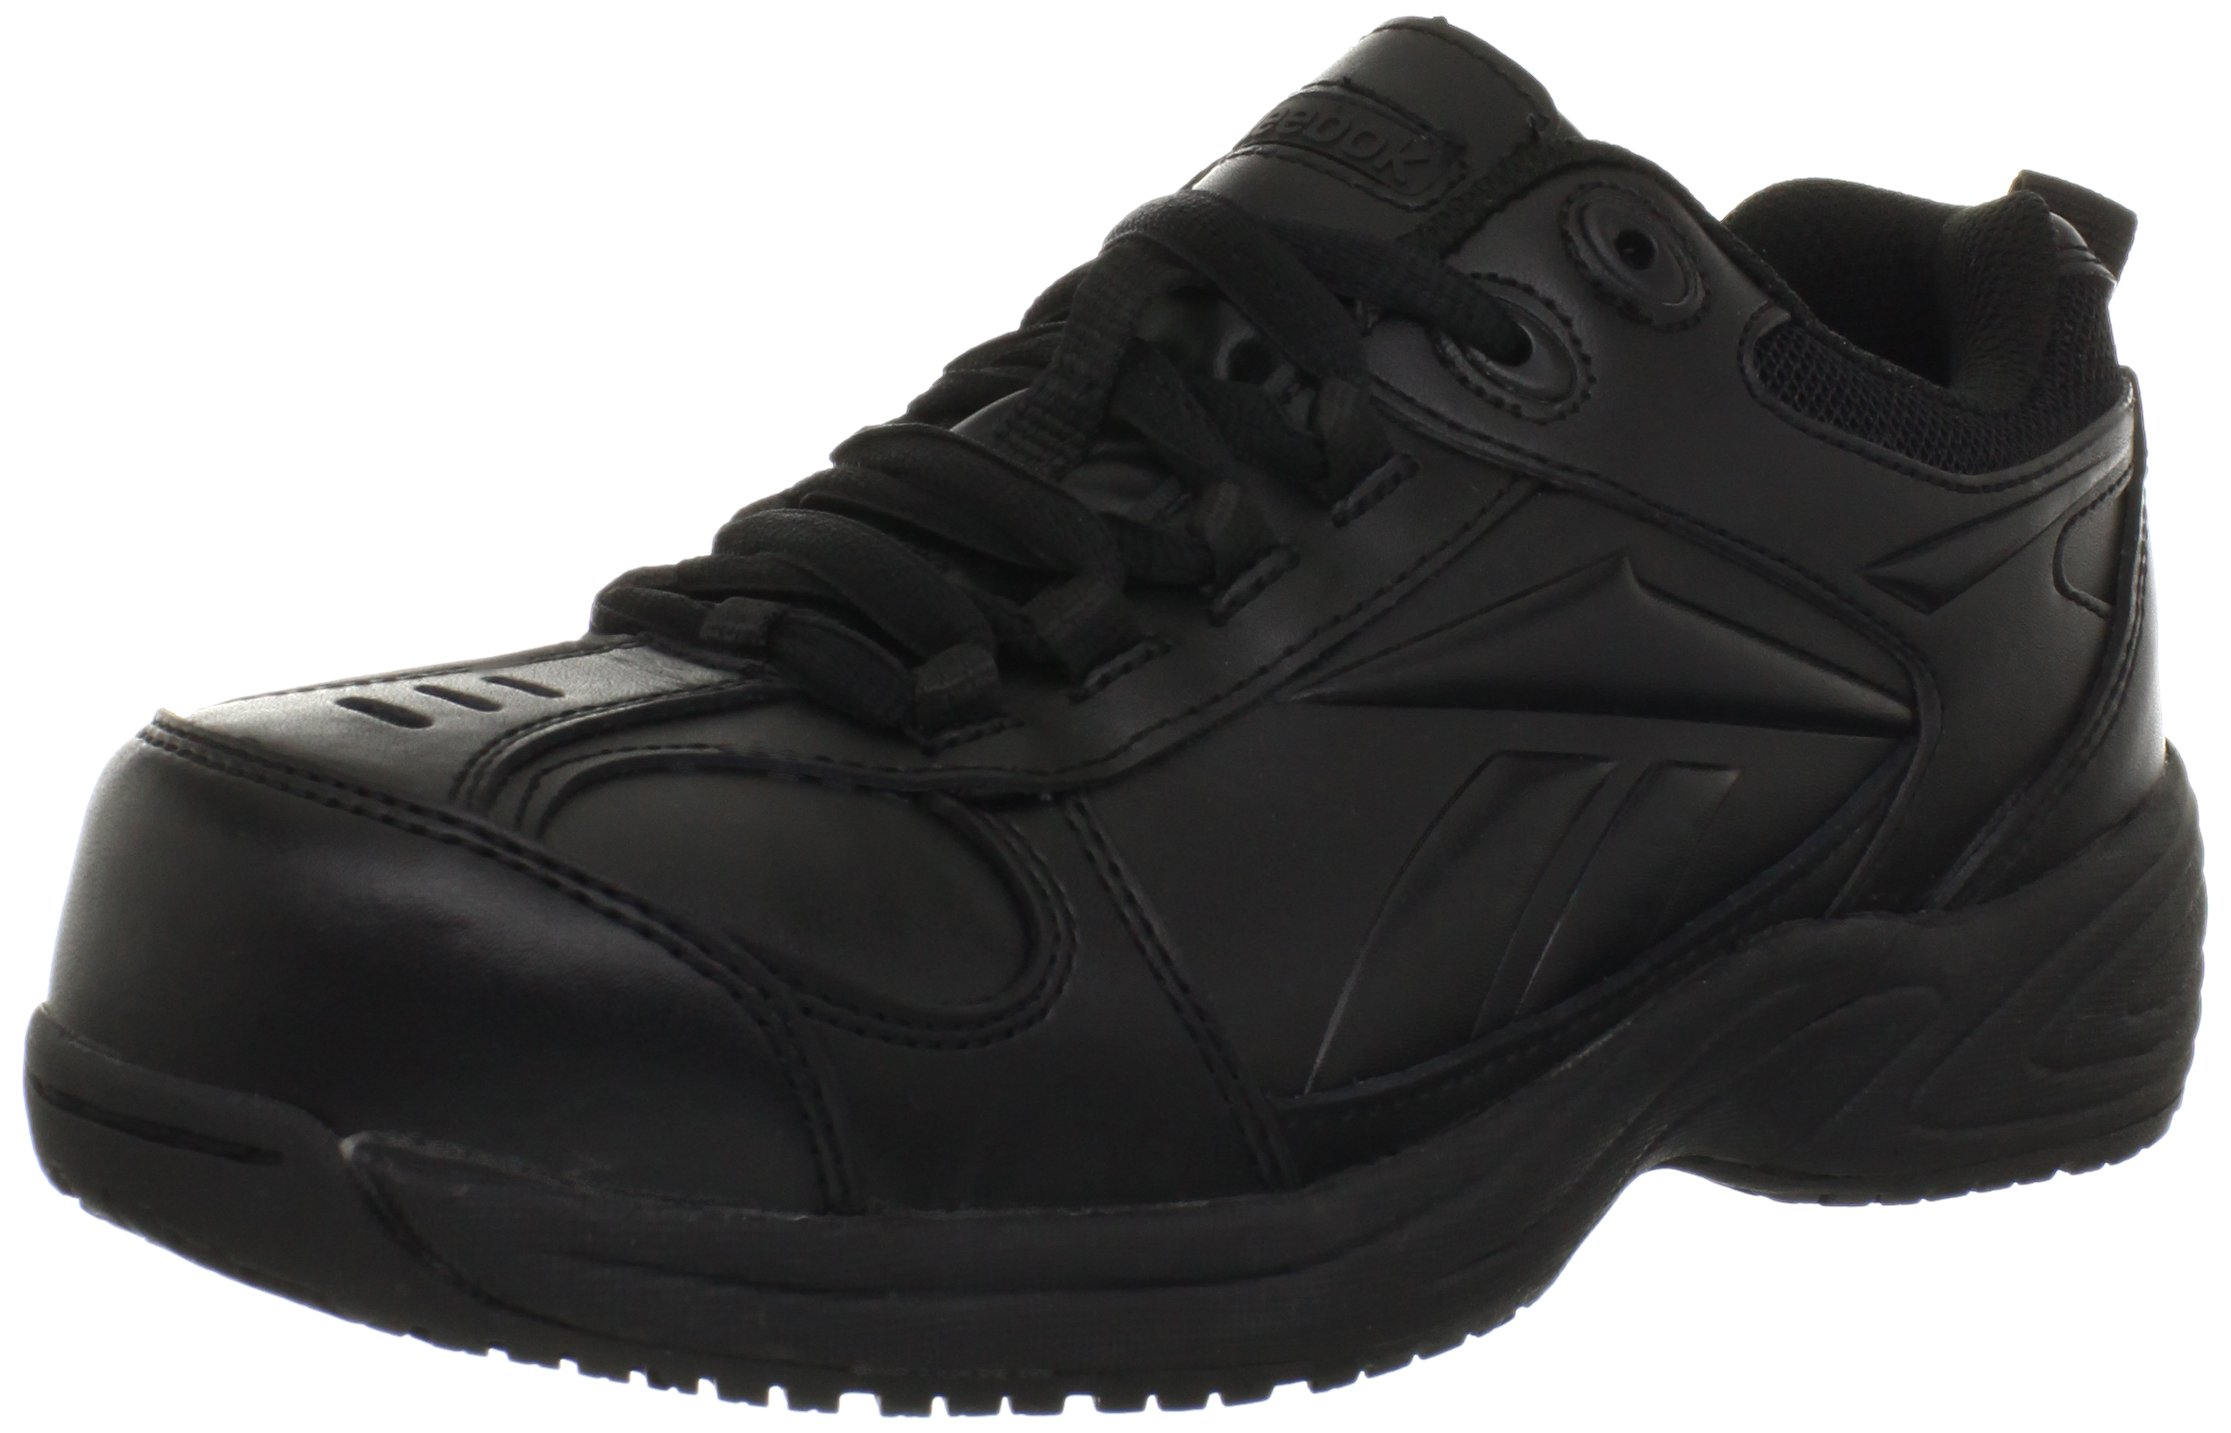 Reebok Work Women's Jorie RB186 Work Shoe,Black,9 M US